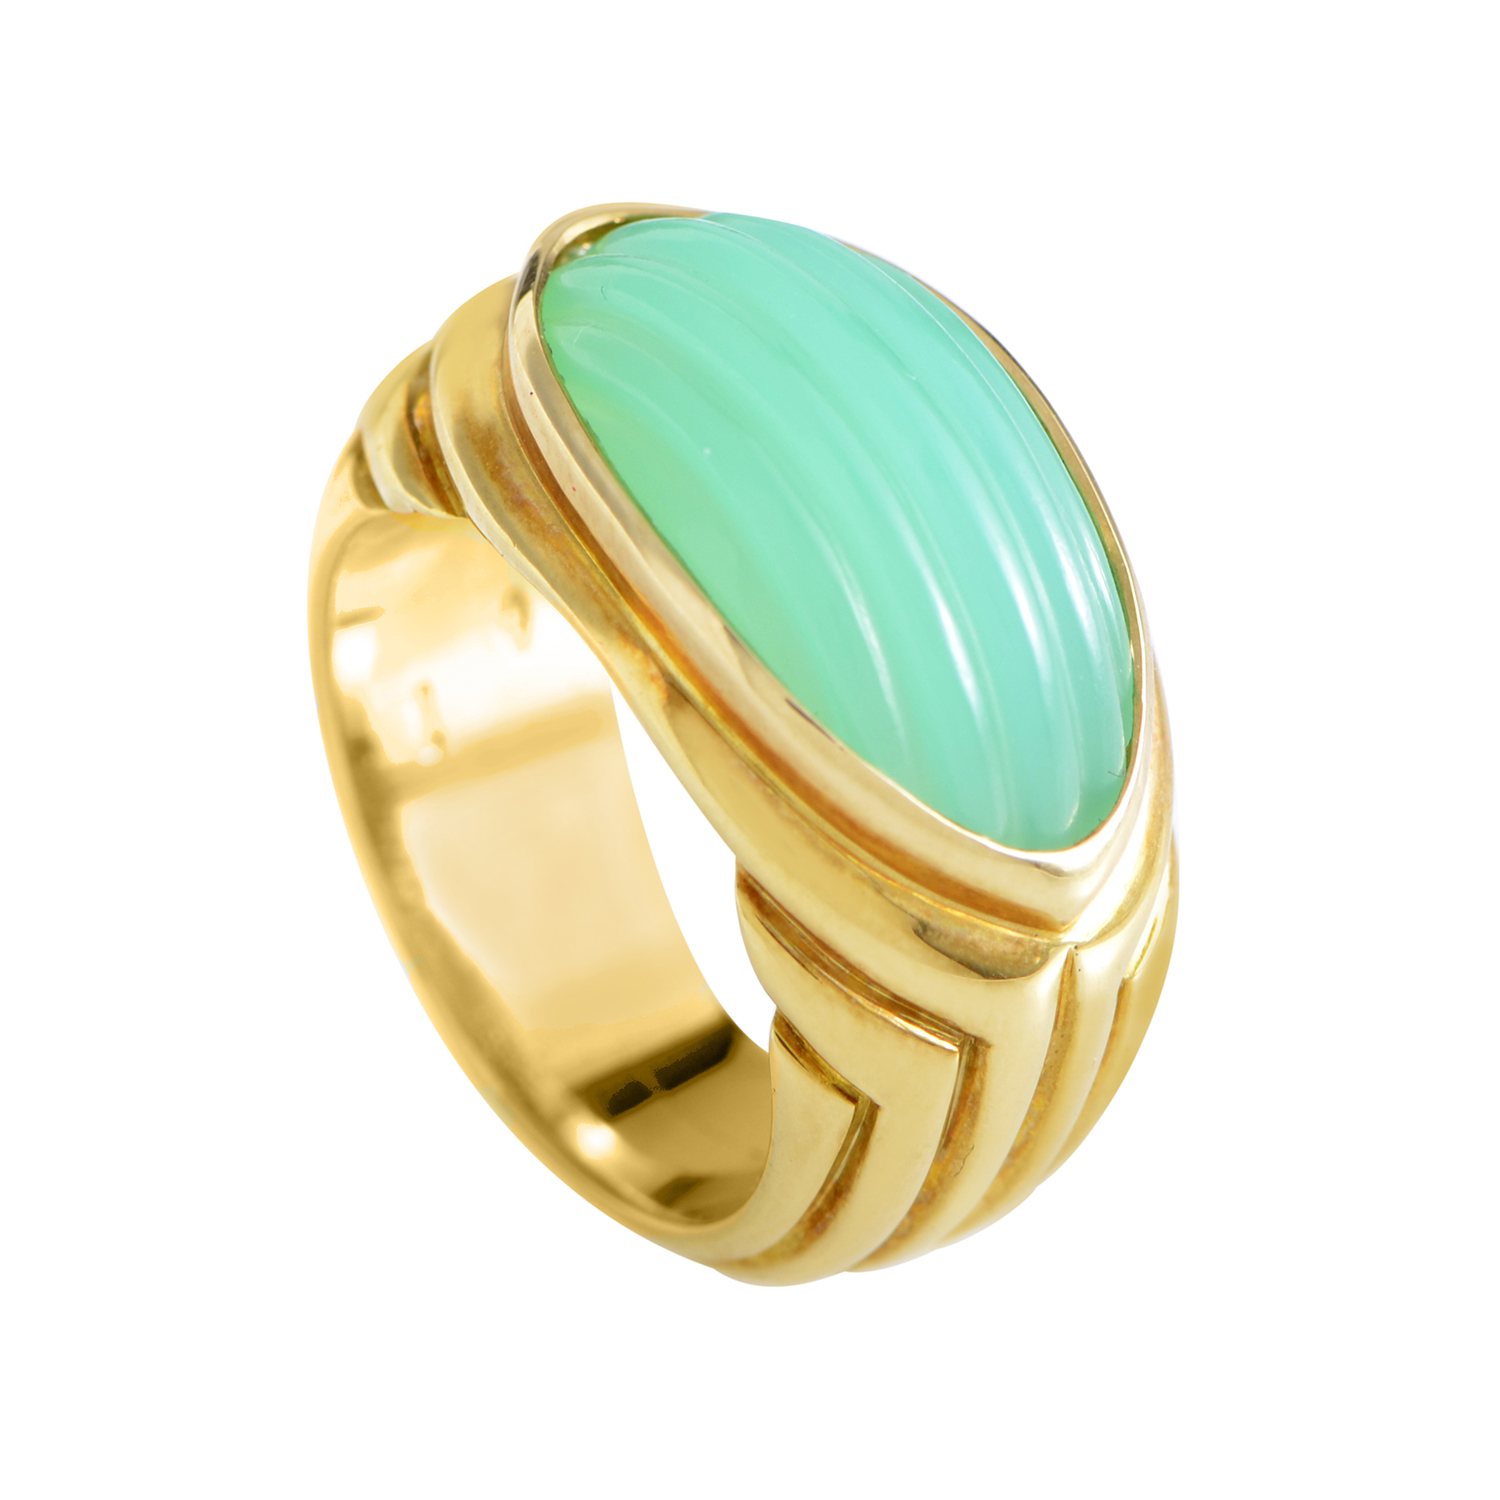 Bvlgari 18K Yellow Gold Chrysoprase Ring